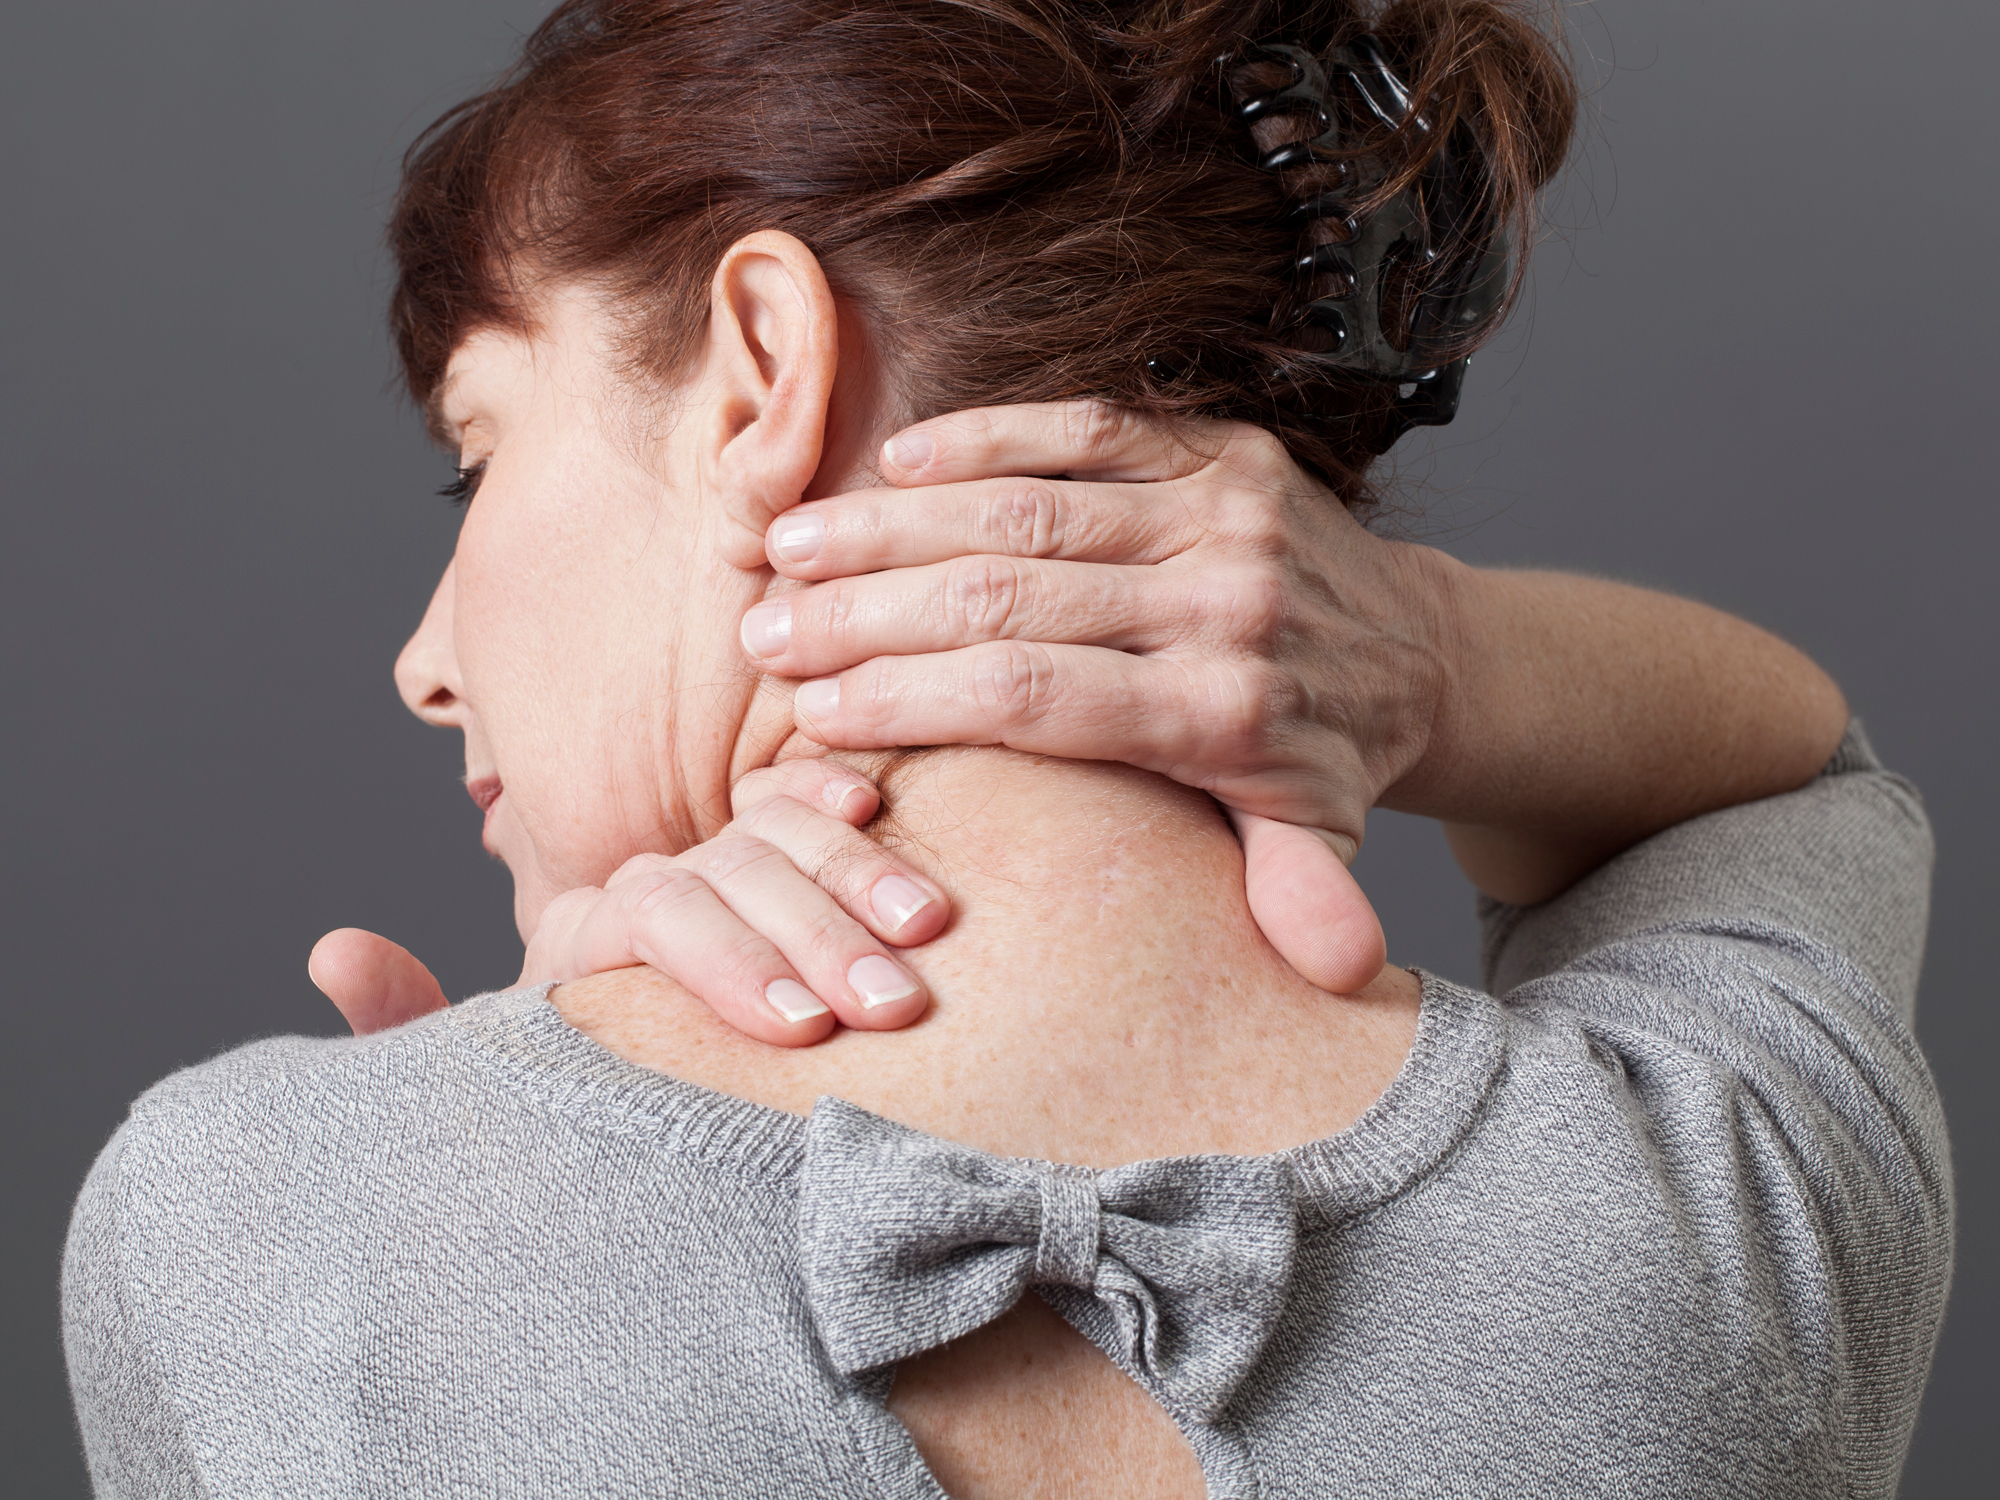 7 heart attack signs women should never ignore